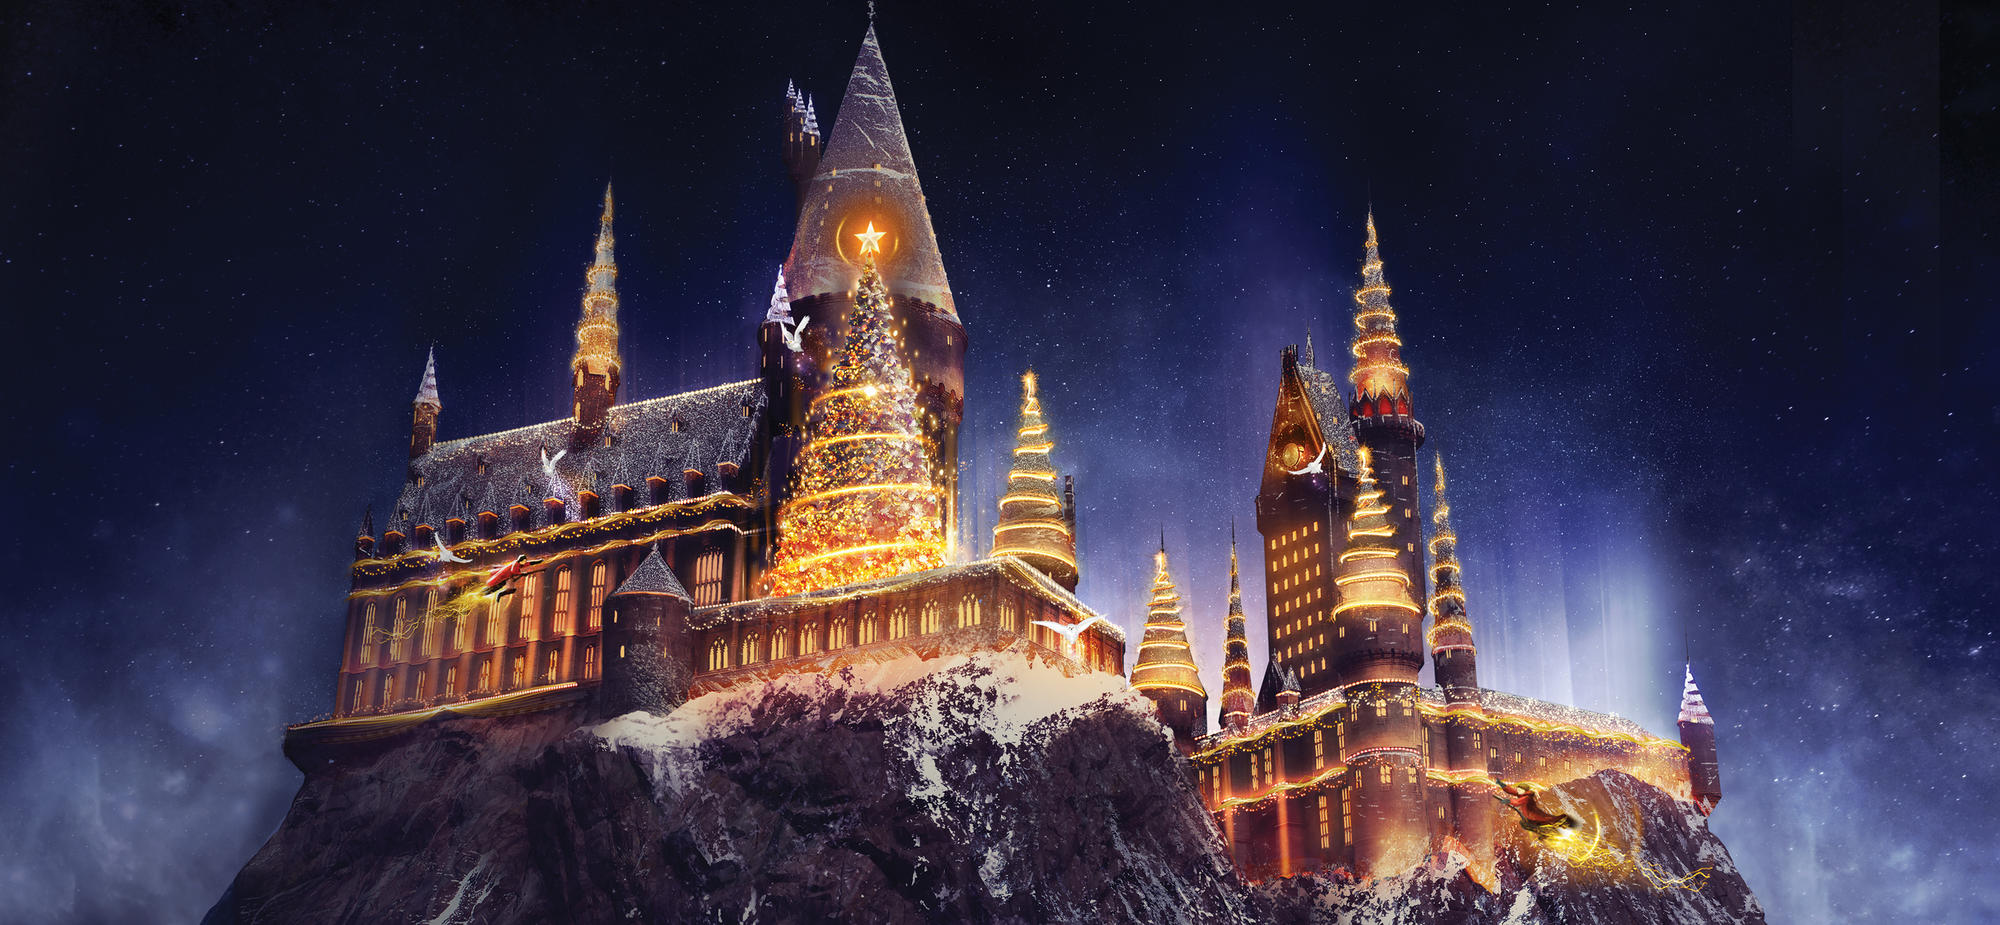 Magical Holiday Places The Wizarding World of Harry Potter